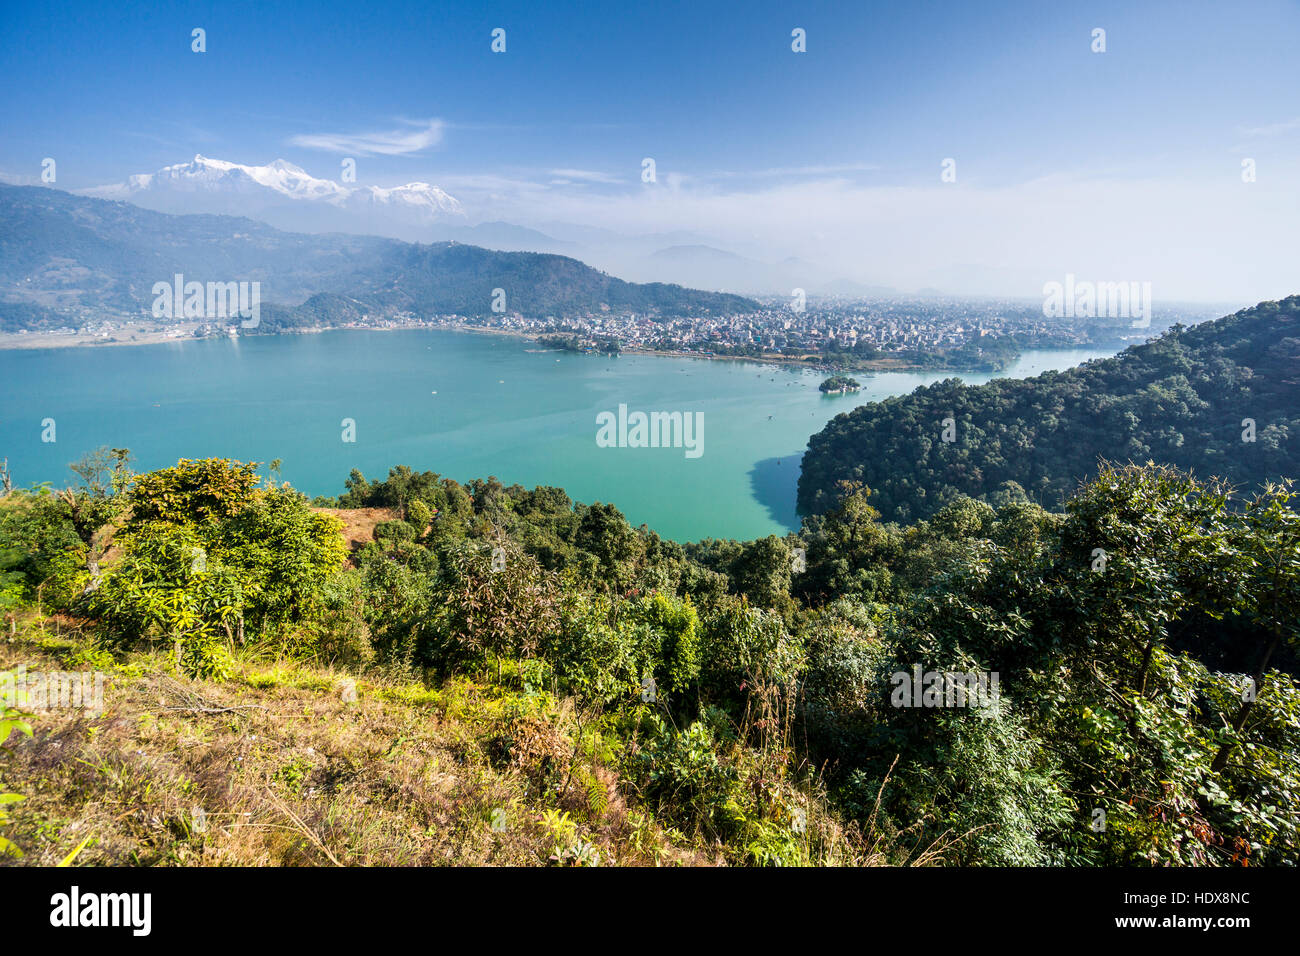 Aerial view on Phewa Lake and Pokhara Lake Side, Annapurna mountains in the distance - Stock Image